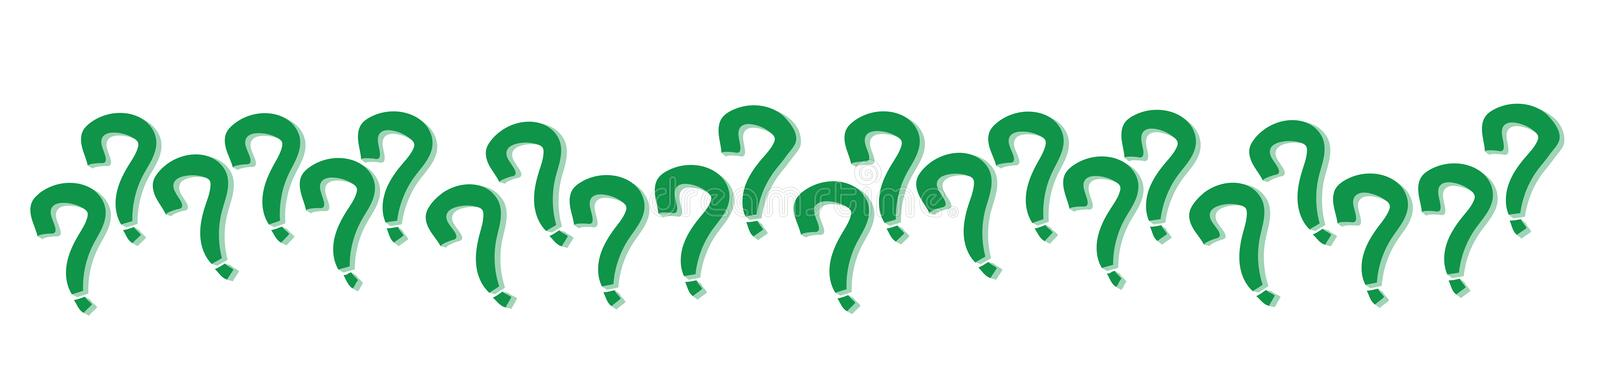 Question mark signs in green color aligned randomly in a series pattern with shadow isolated on a white transparent seamless wide. Banner background. Vector stock illustration